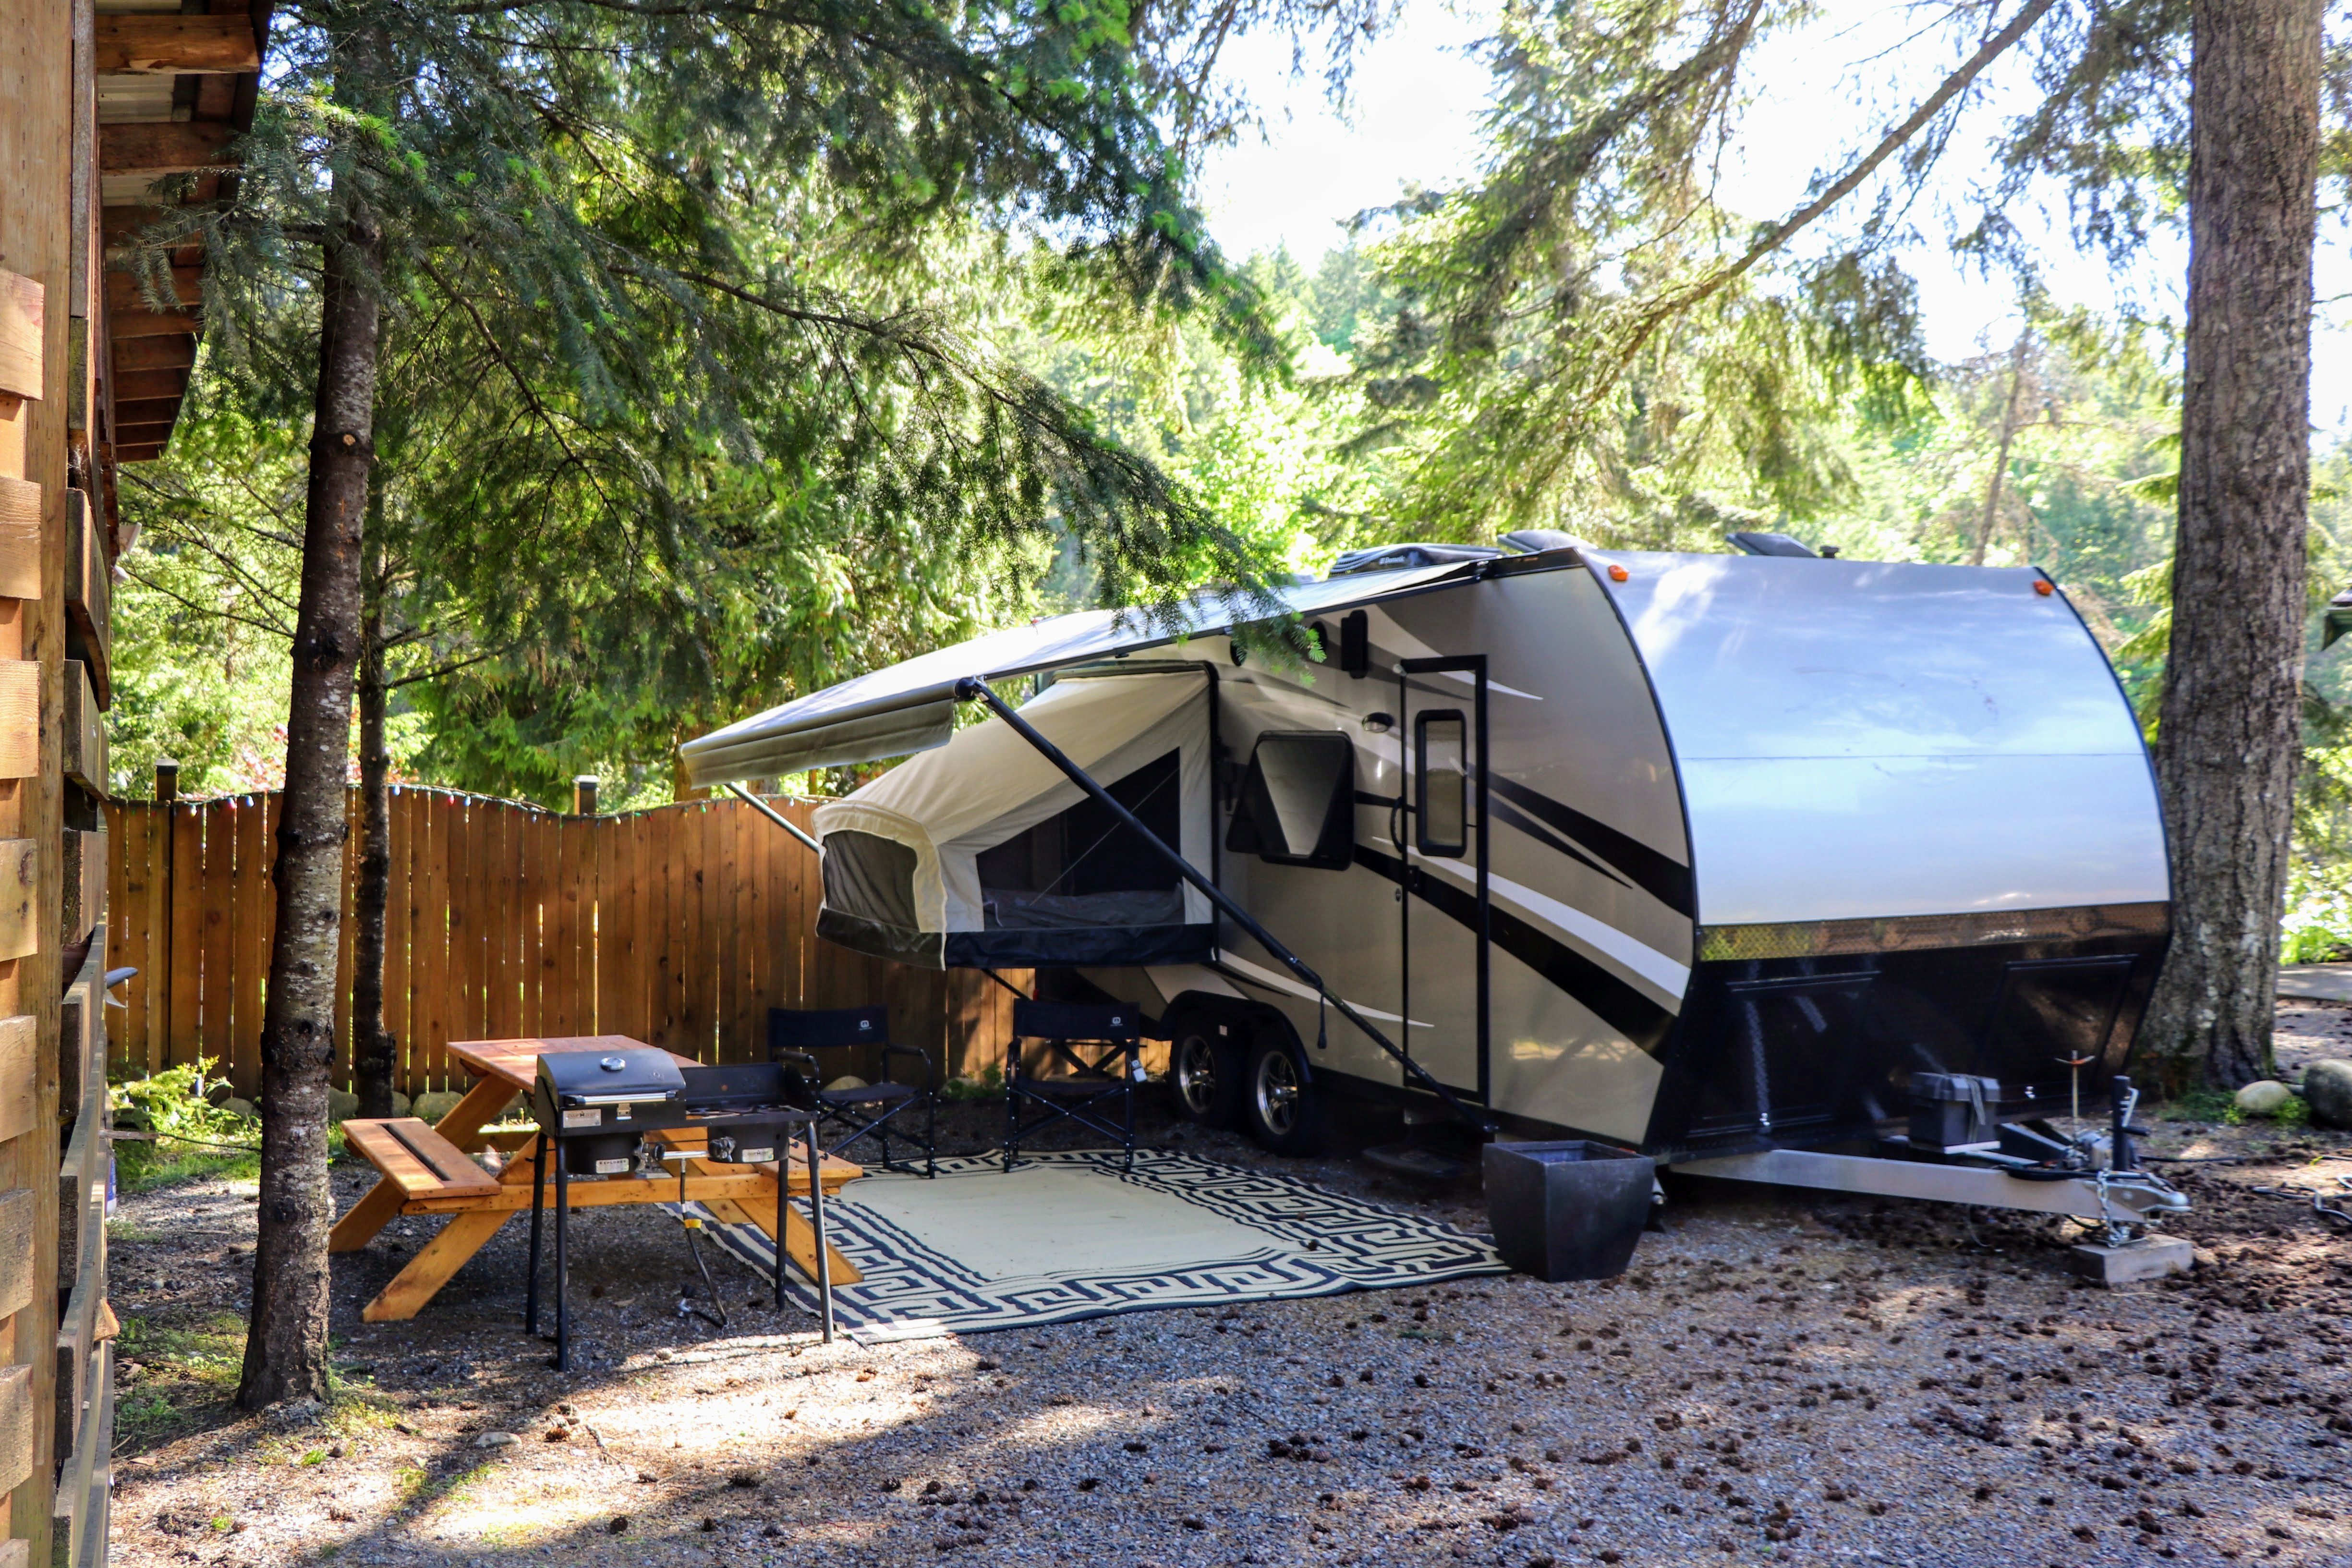 Camping   Riverside Vacation Rental Trailer Campsite